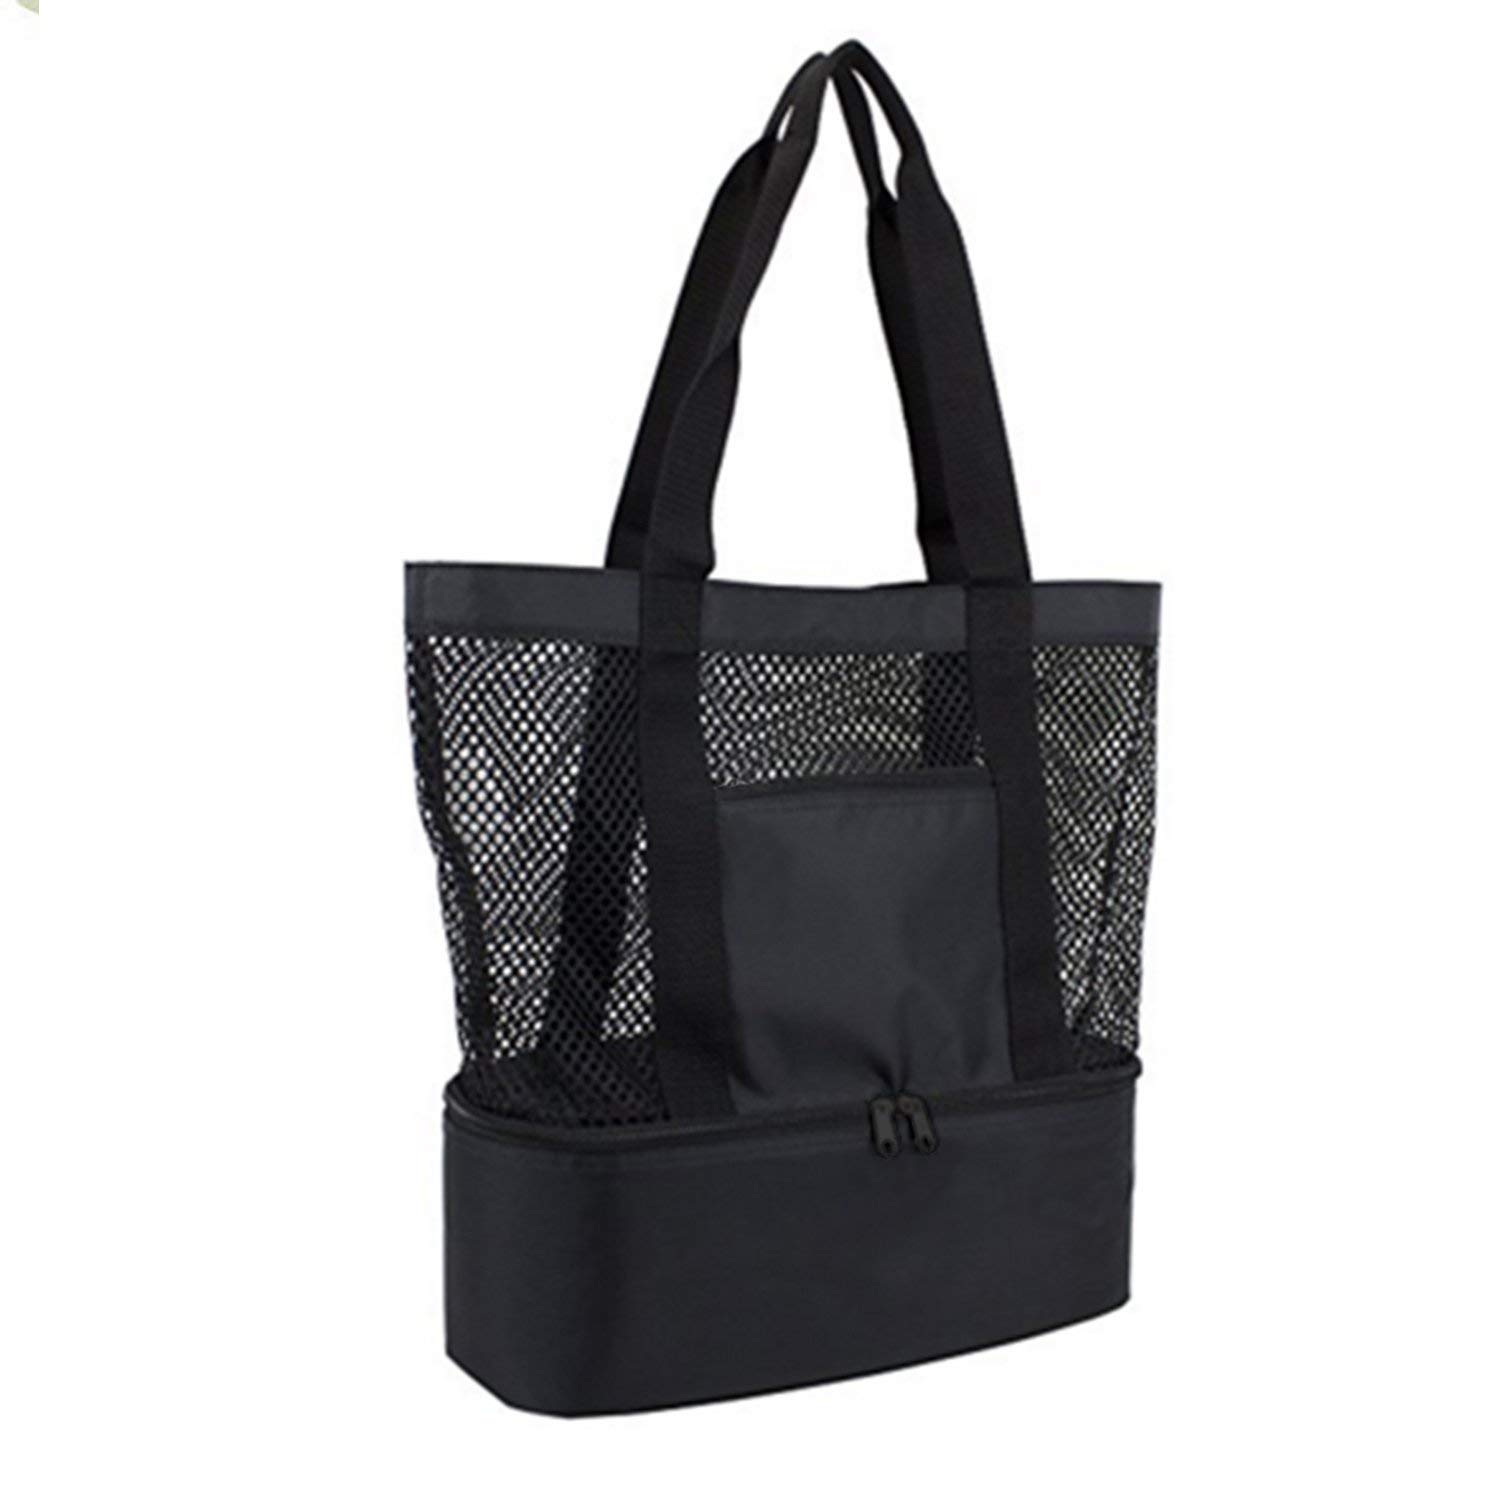 Mesh Beach Bag Tote Bag Stay Away from Sand for the Beach with Zipper Top and Insulated Picnic Cooler